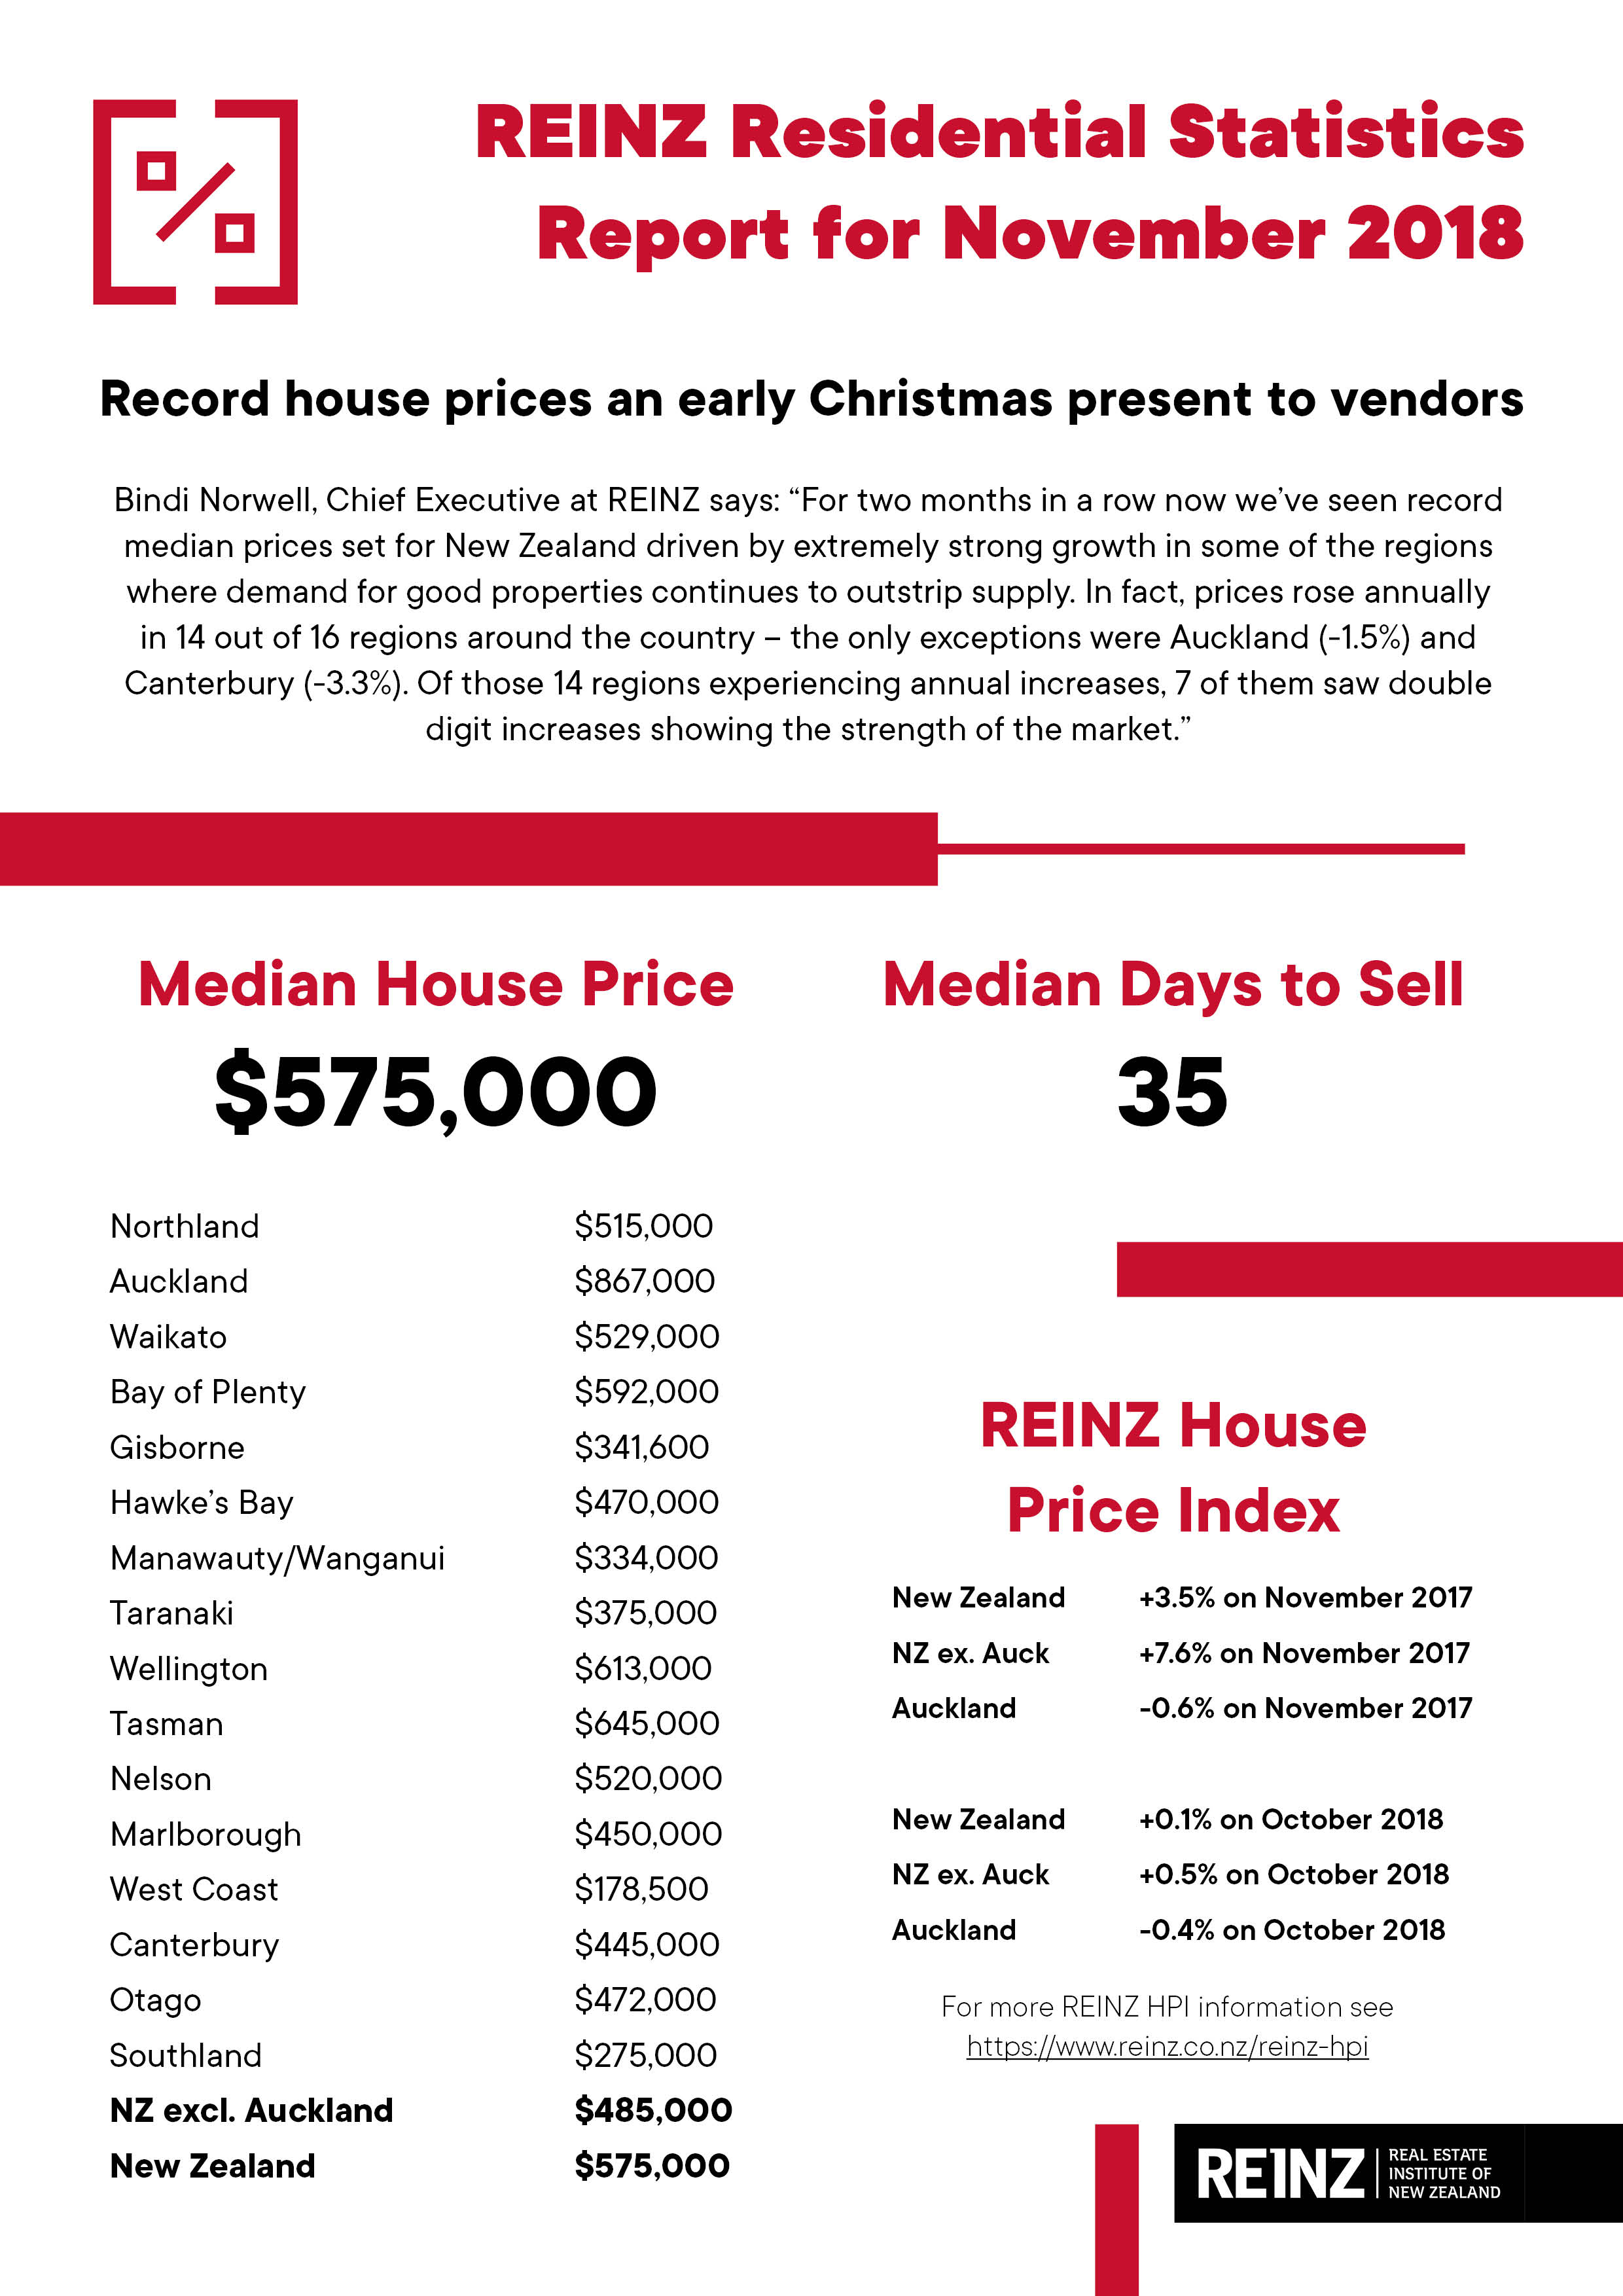 Record house prices an early Christmas present to vendors, says REINZ